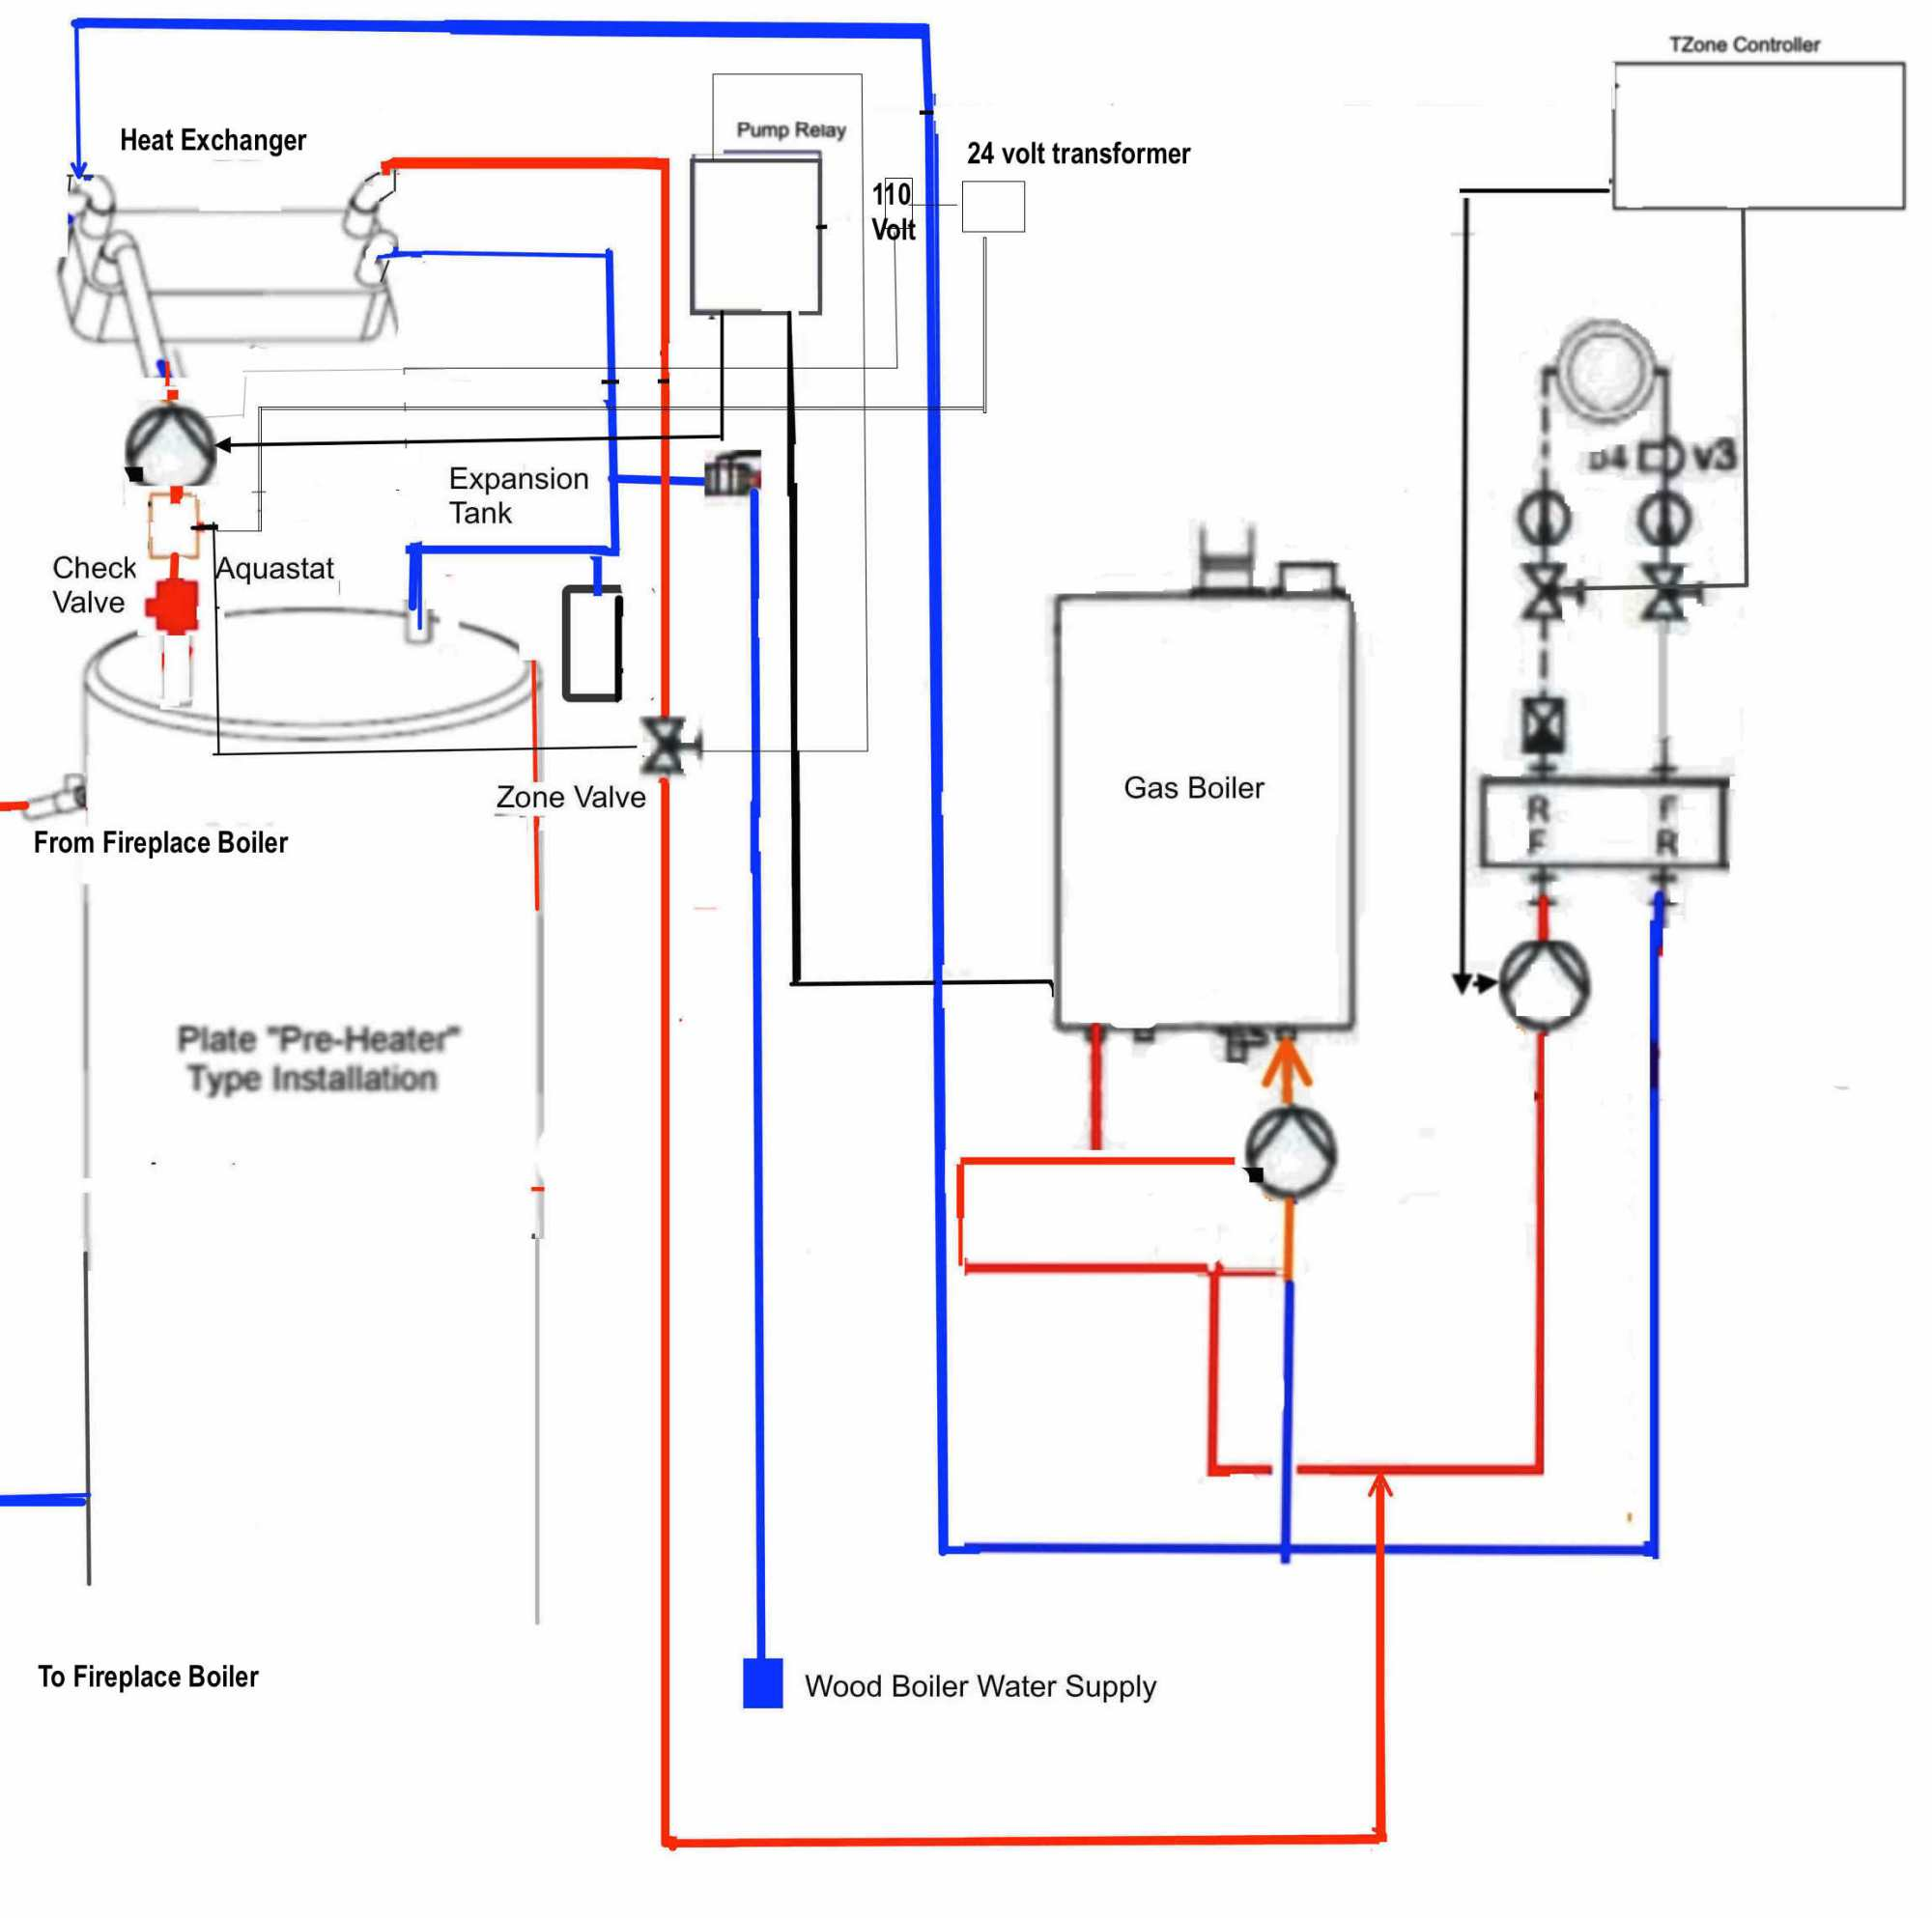 hight resolution of wiring a boiler wiring diagram schematics slant fin boiler wiring diagram aquastat wiring diagram for boiler